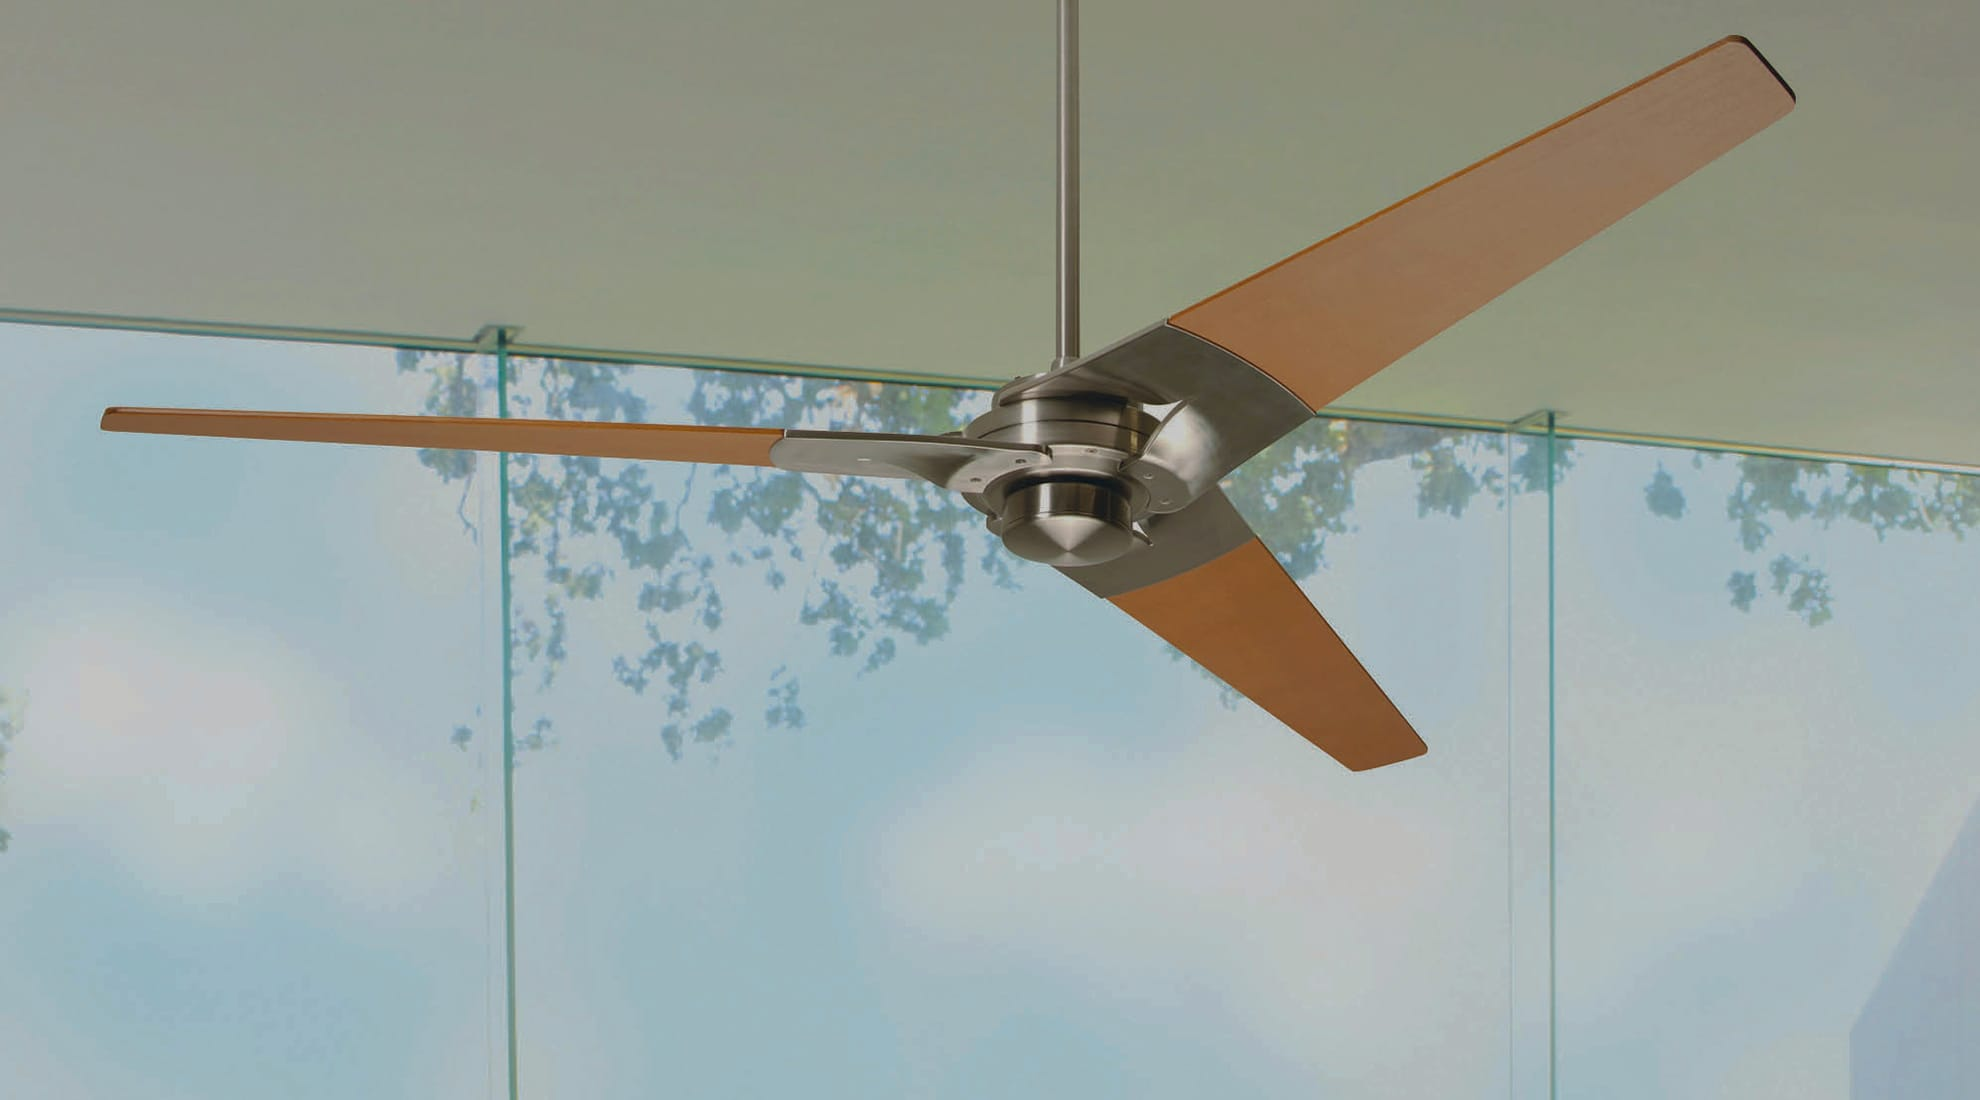 How to clean ceiling fans ceiling fan cleaning tips at lumens the right way to clean your ceiling fan aloadofball Gallery